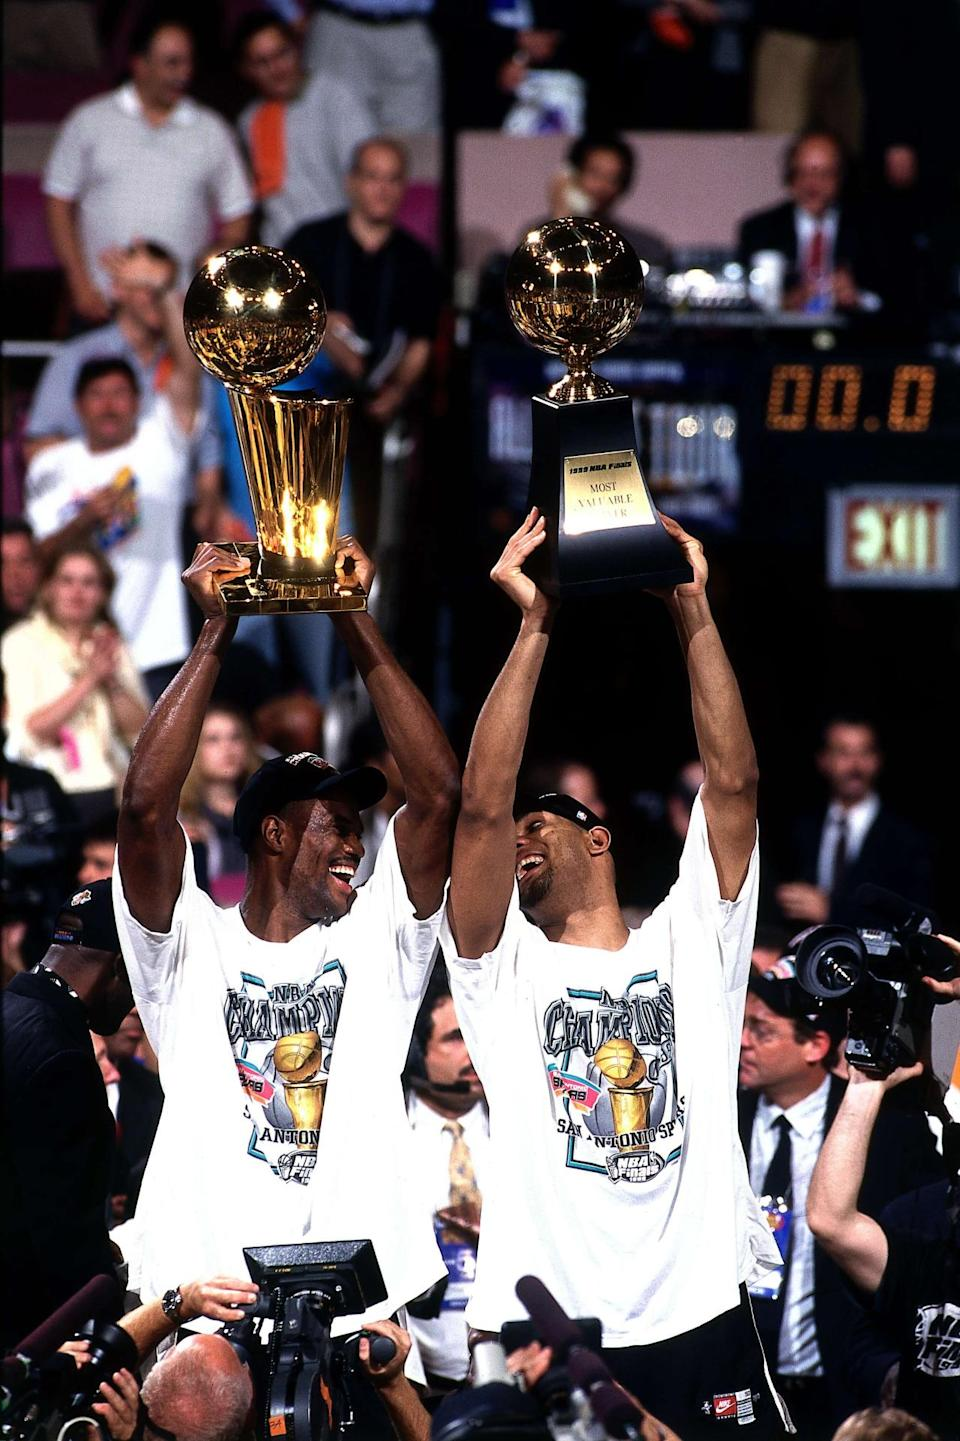 <p>1999: David Robinson #50 holds up the NBA Championship trophy as Tim Duncan #21 of the San Antonio Spurs holds up the MVP after winning Game Five of the 1999 NBA Finals at Madison Square Garden on June 25, 1999 in New York City, New York.</p>